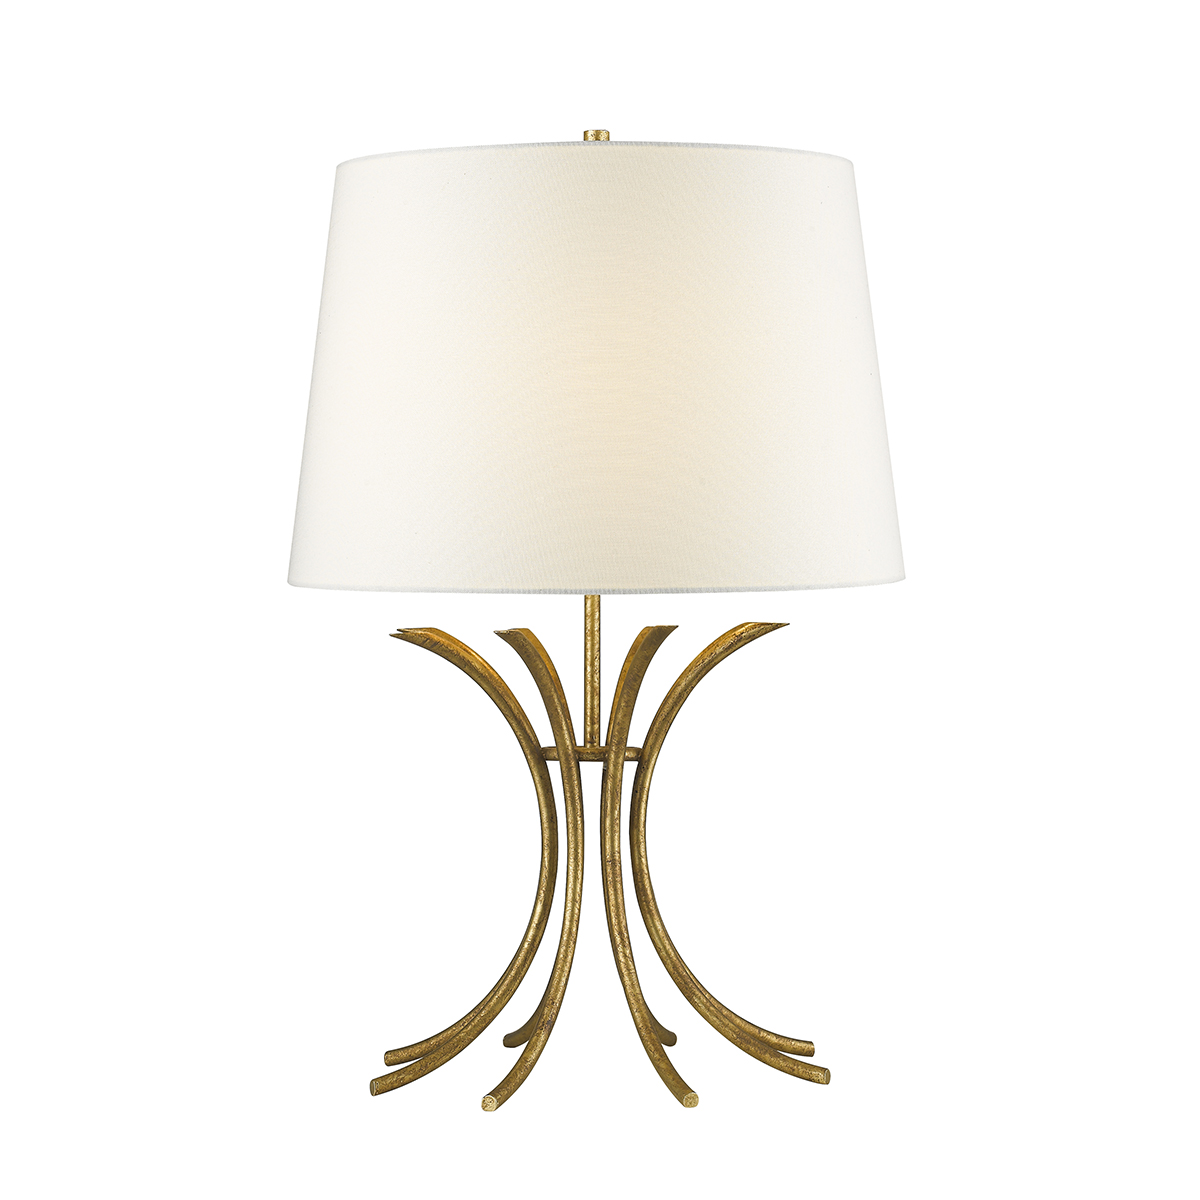 Gilded Nola TLM-1014 Rivers Table Lamp